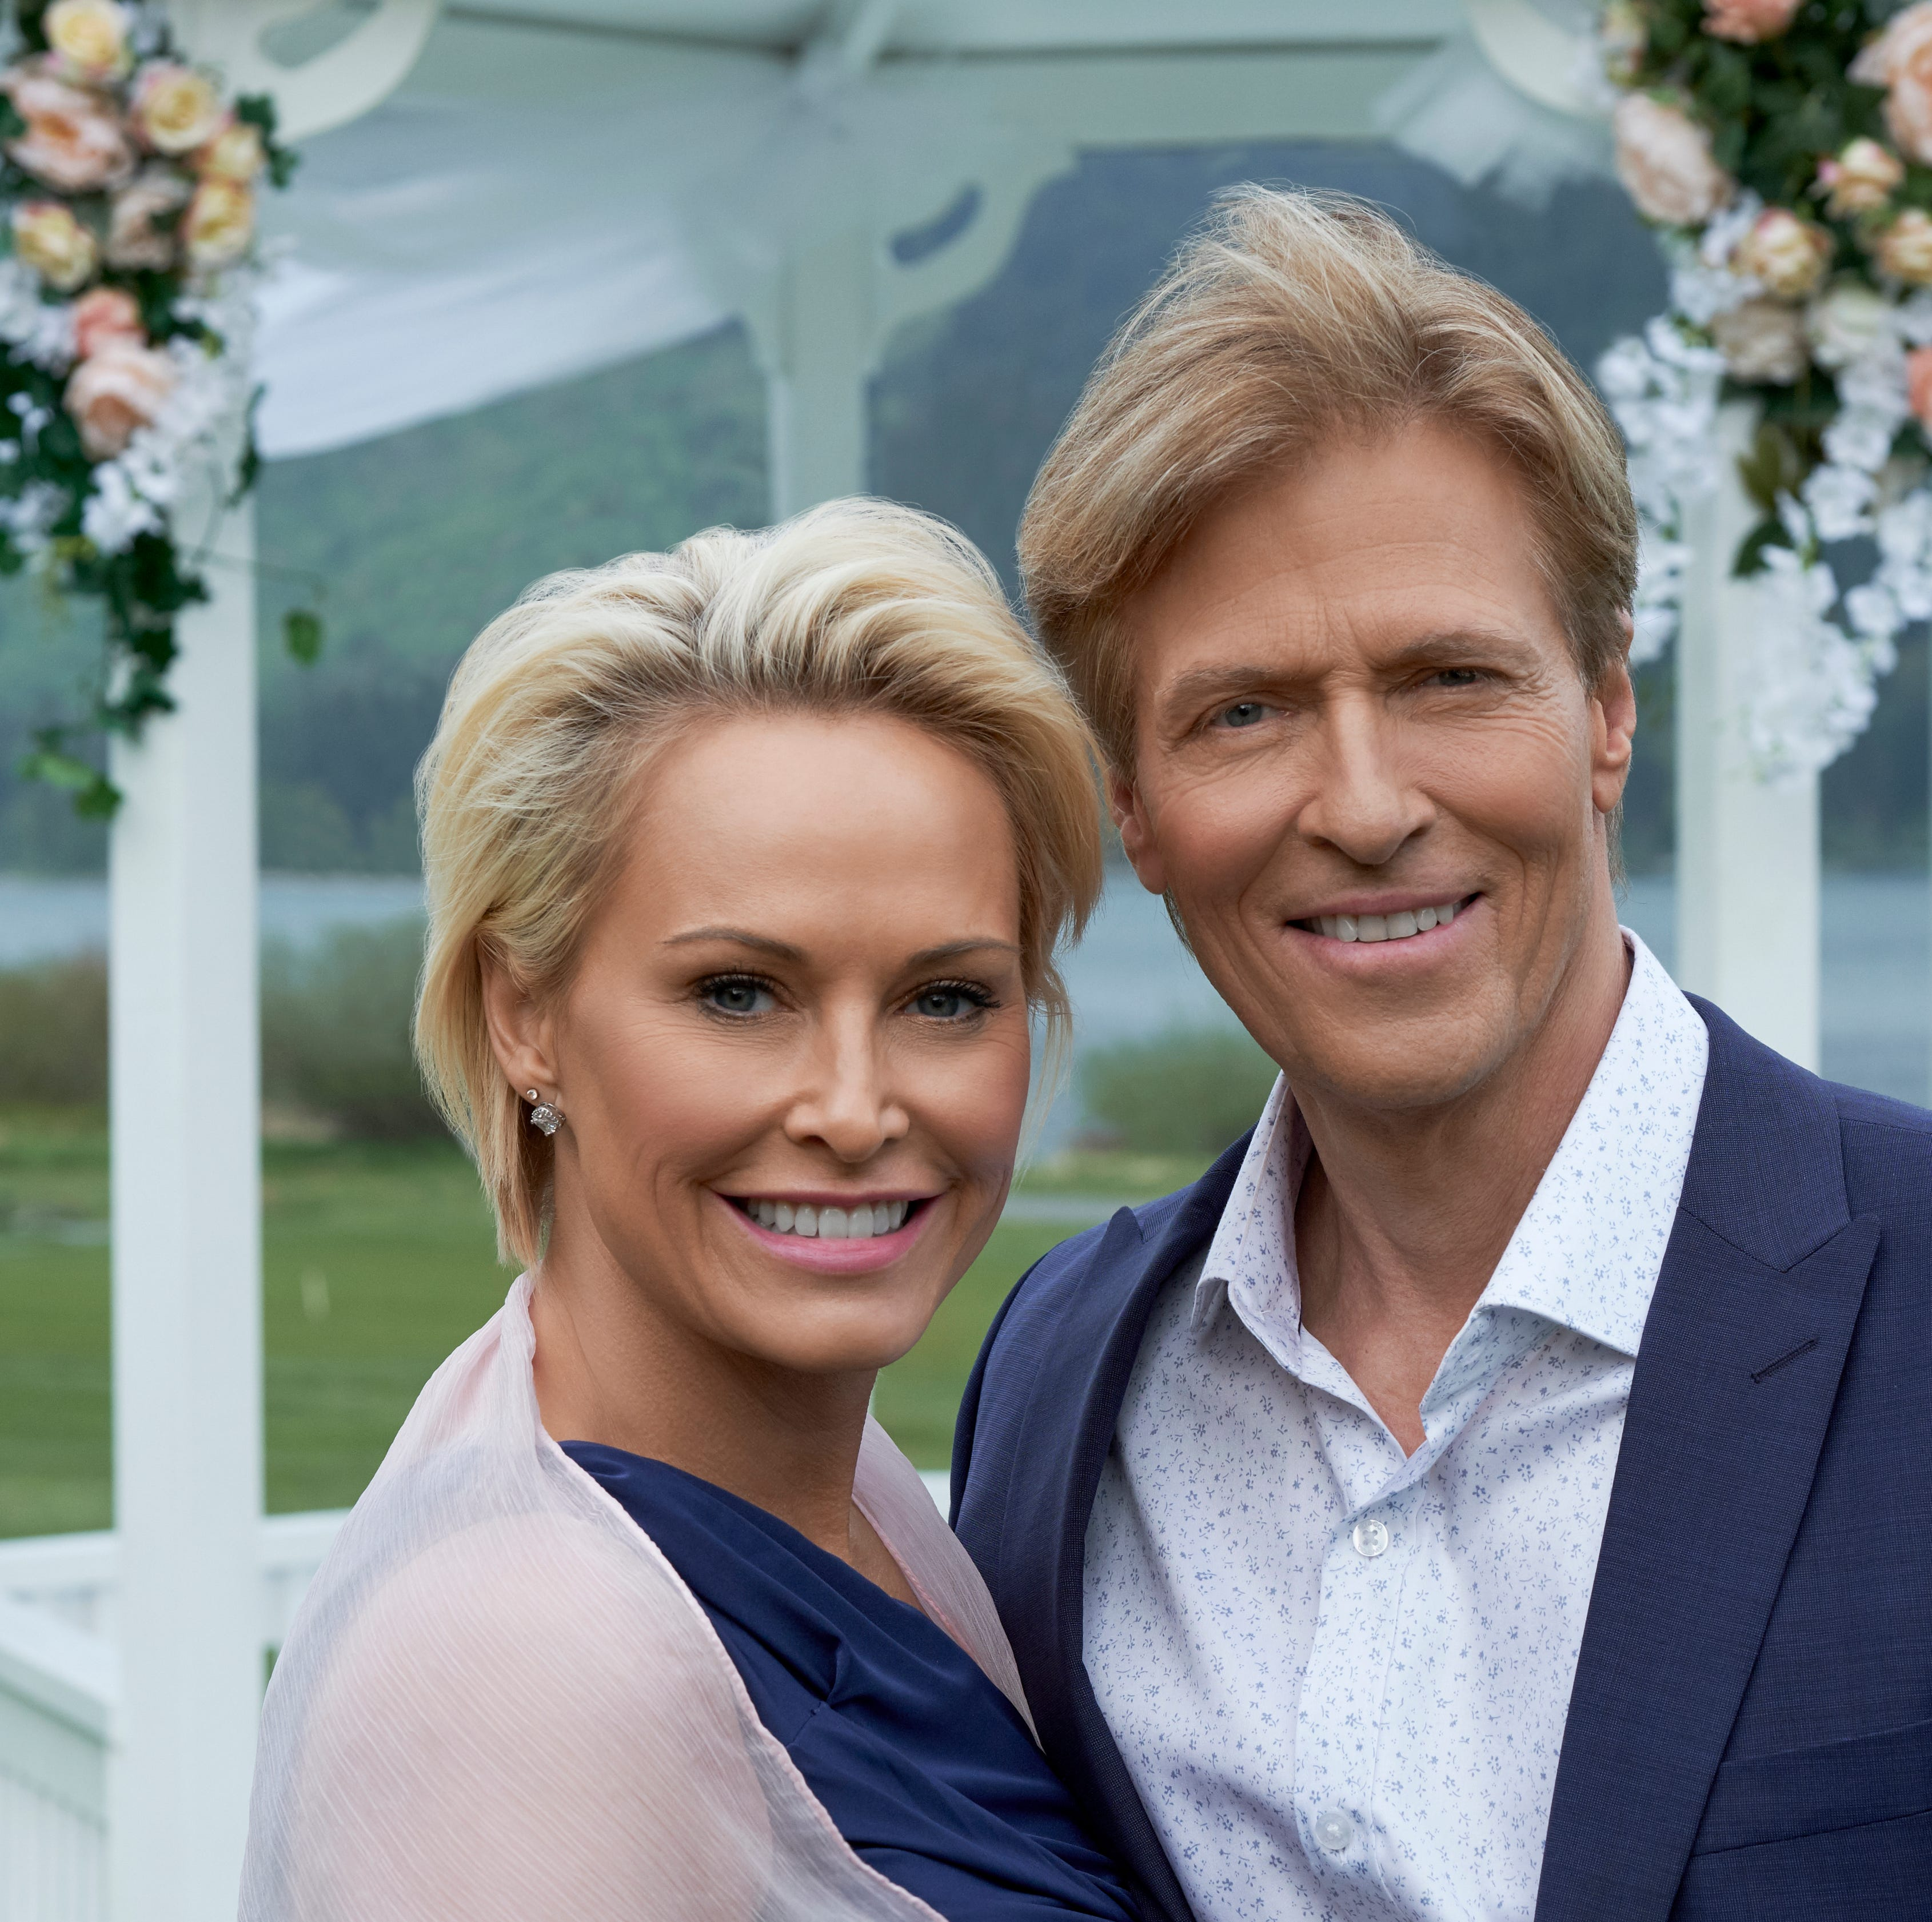 'He seemed just like us.' Jack Wagner wows fans at Hallmark Channel event at Graceland